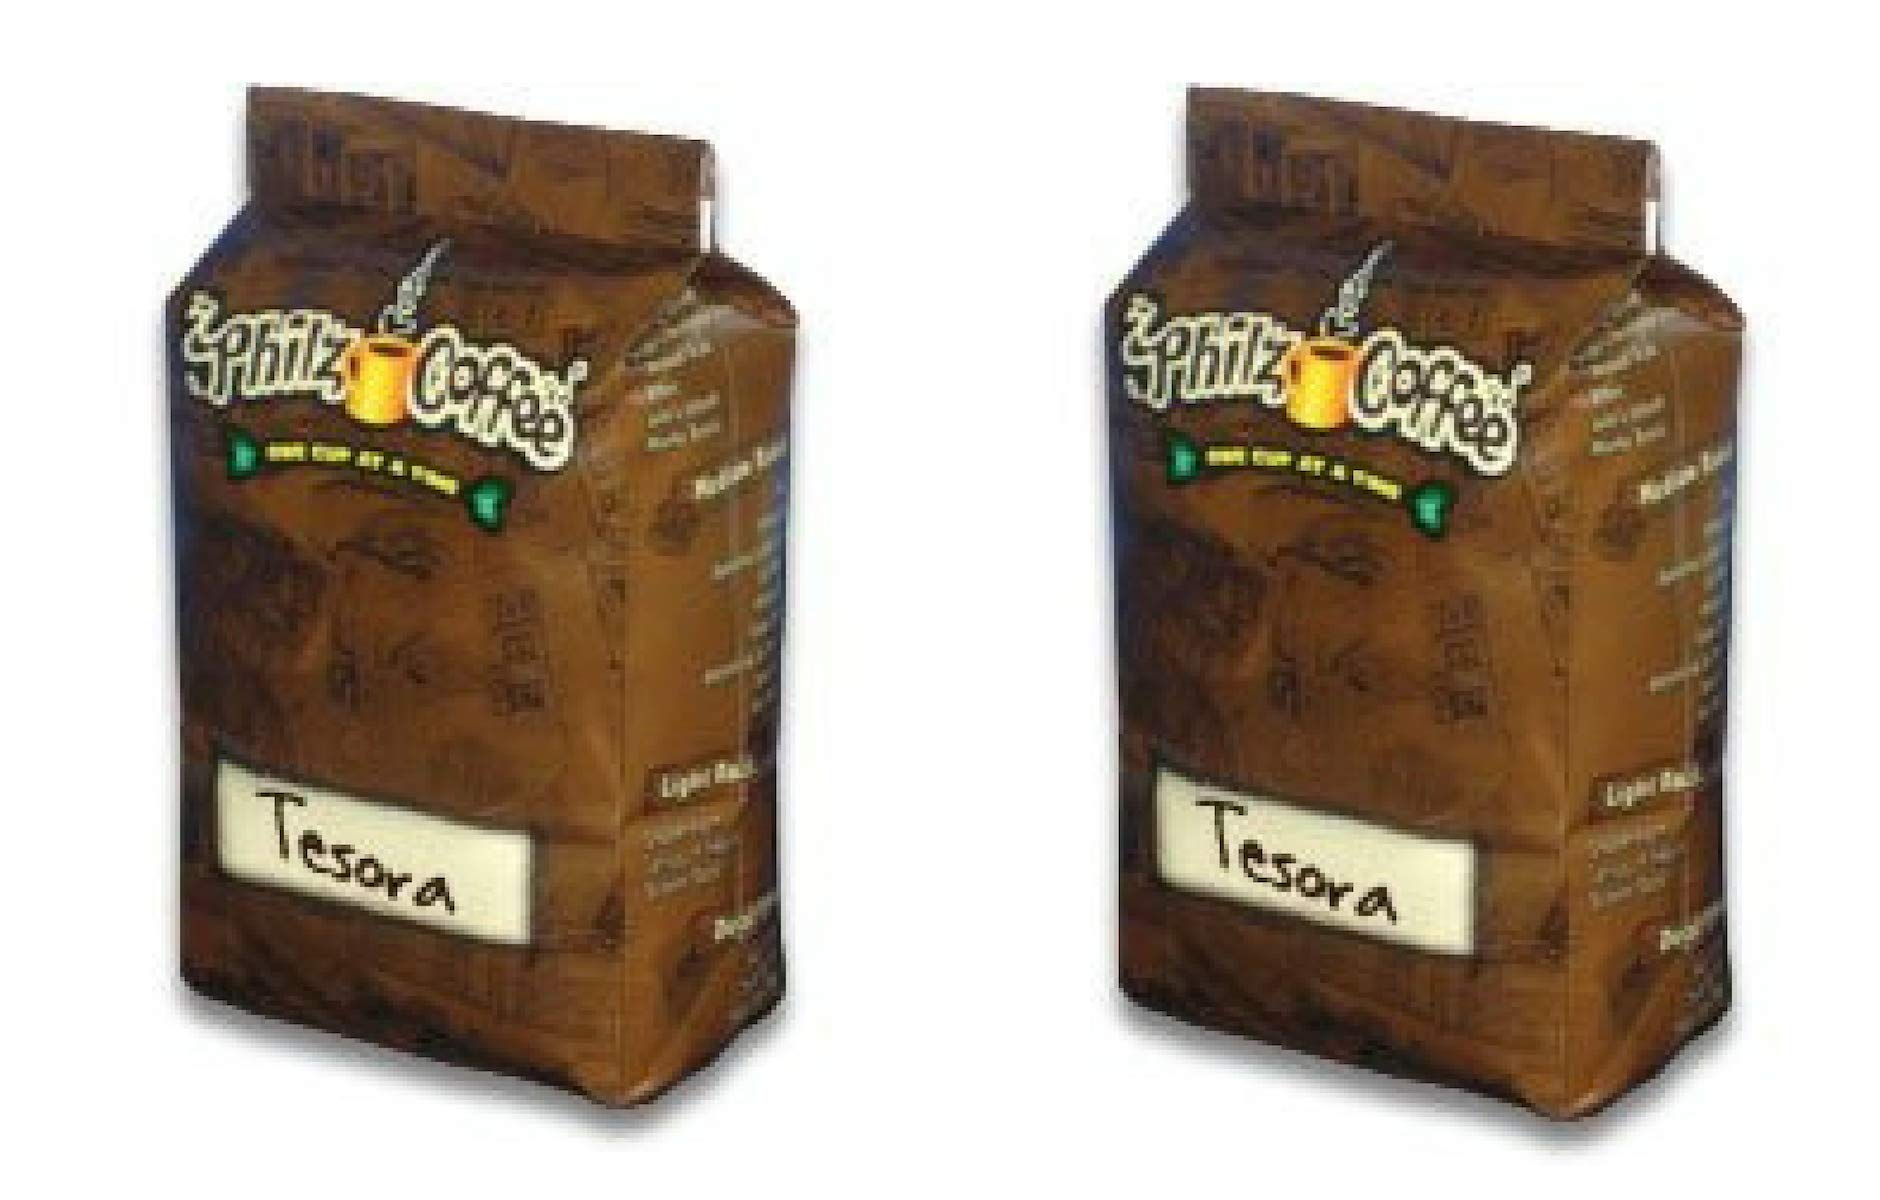 Philz Coffee Tesora 2 pack Medium Roasted Full Bodied Whole Been 24 Ounces of Delicicous Caramel Nuts Butter